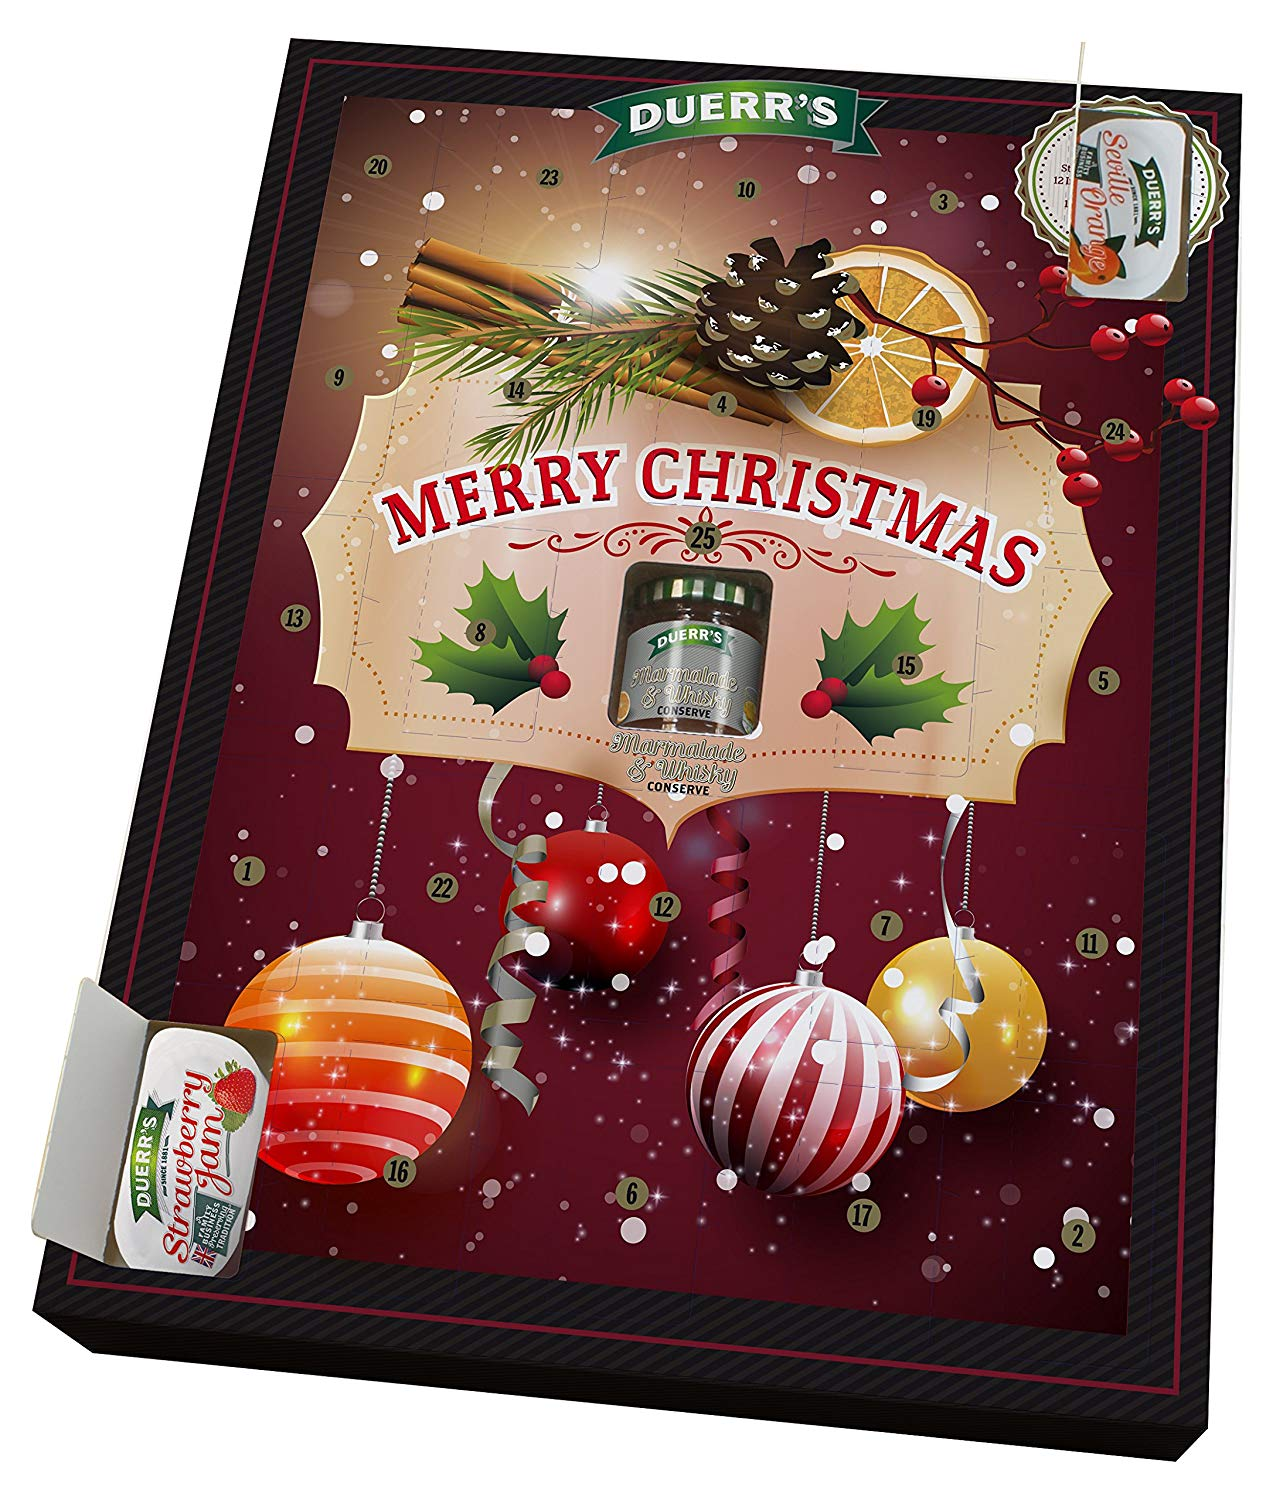 Official Duerr's Jam & Marmalade Individual Portions Festive Merry Christmas Advent Calendar